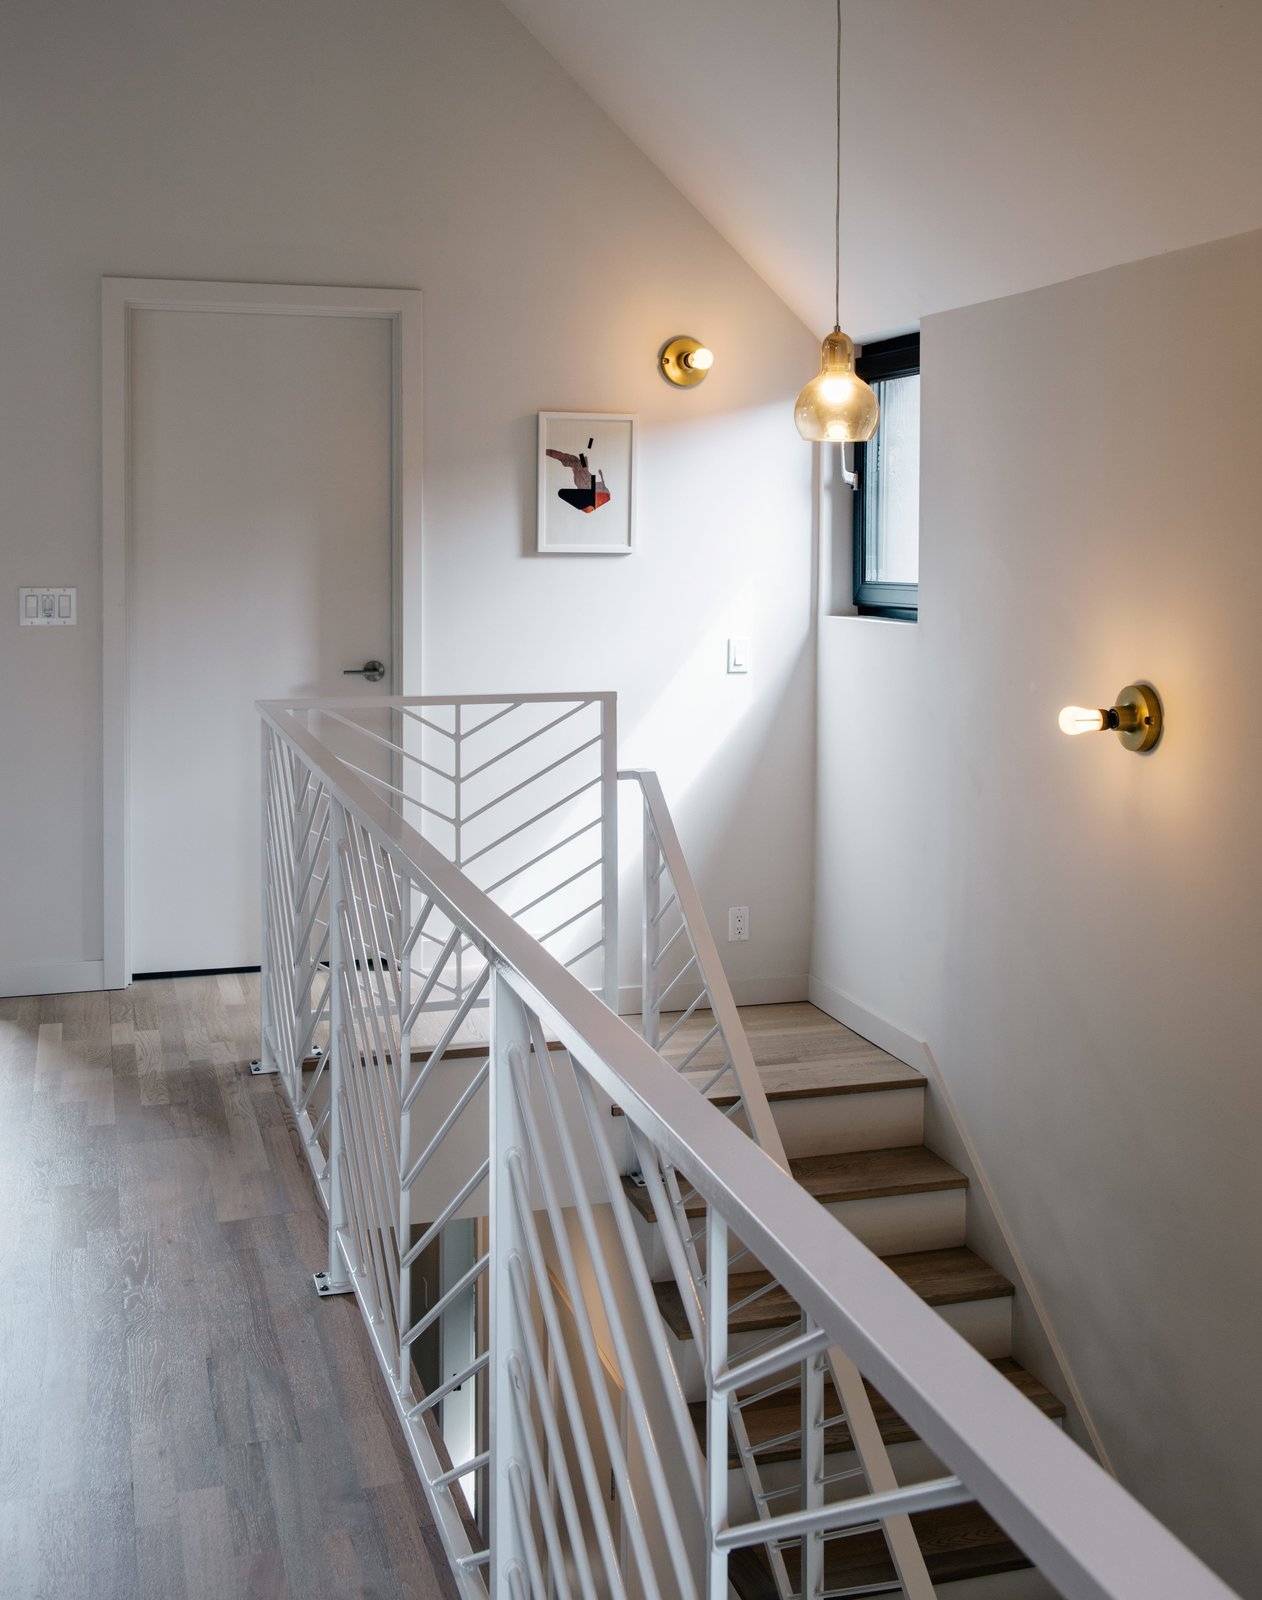 Passive House staircase with white steel railing and wood tread.